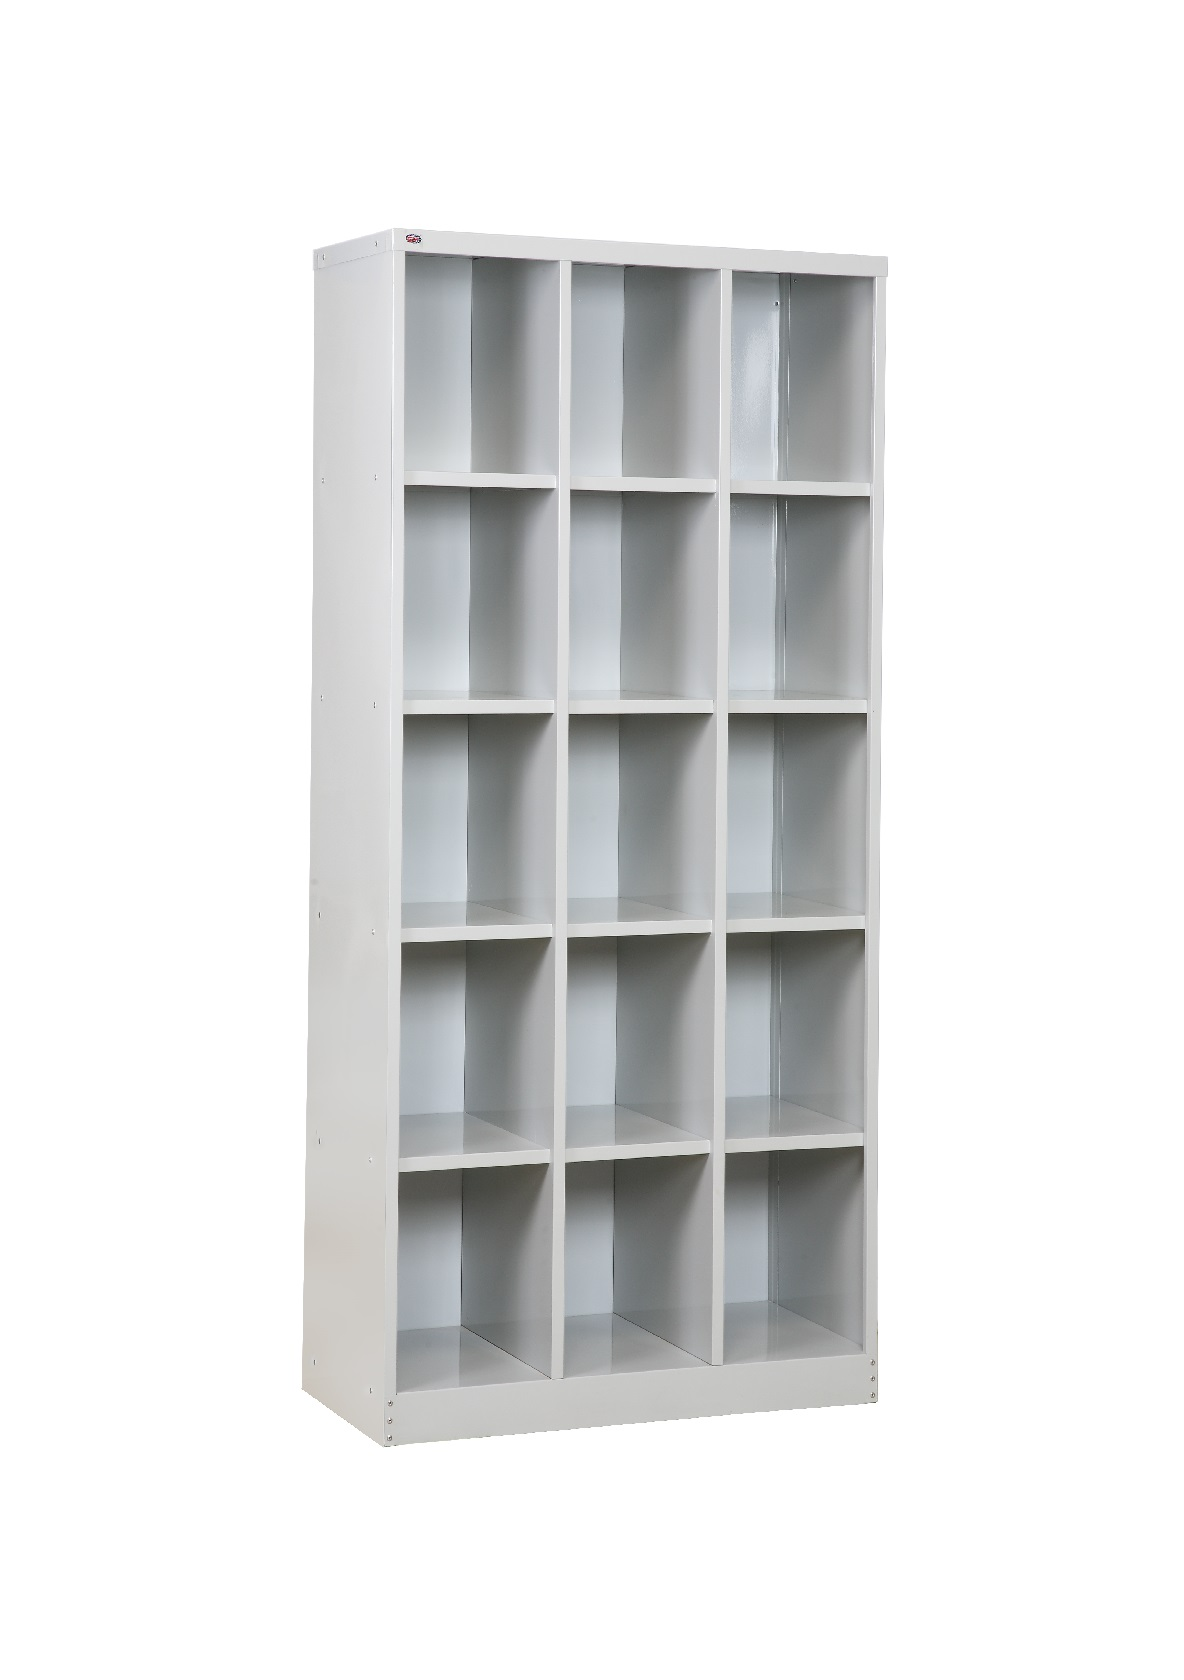 GY405 15 PIGEON HOLES CABINET